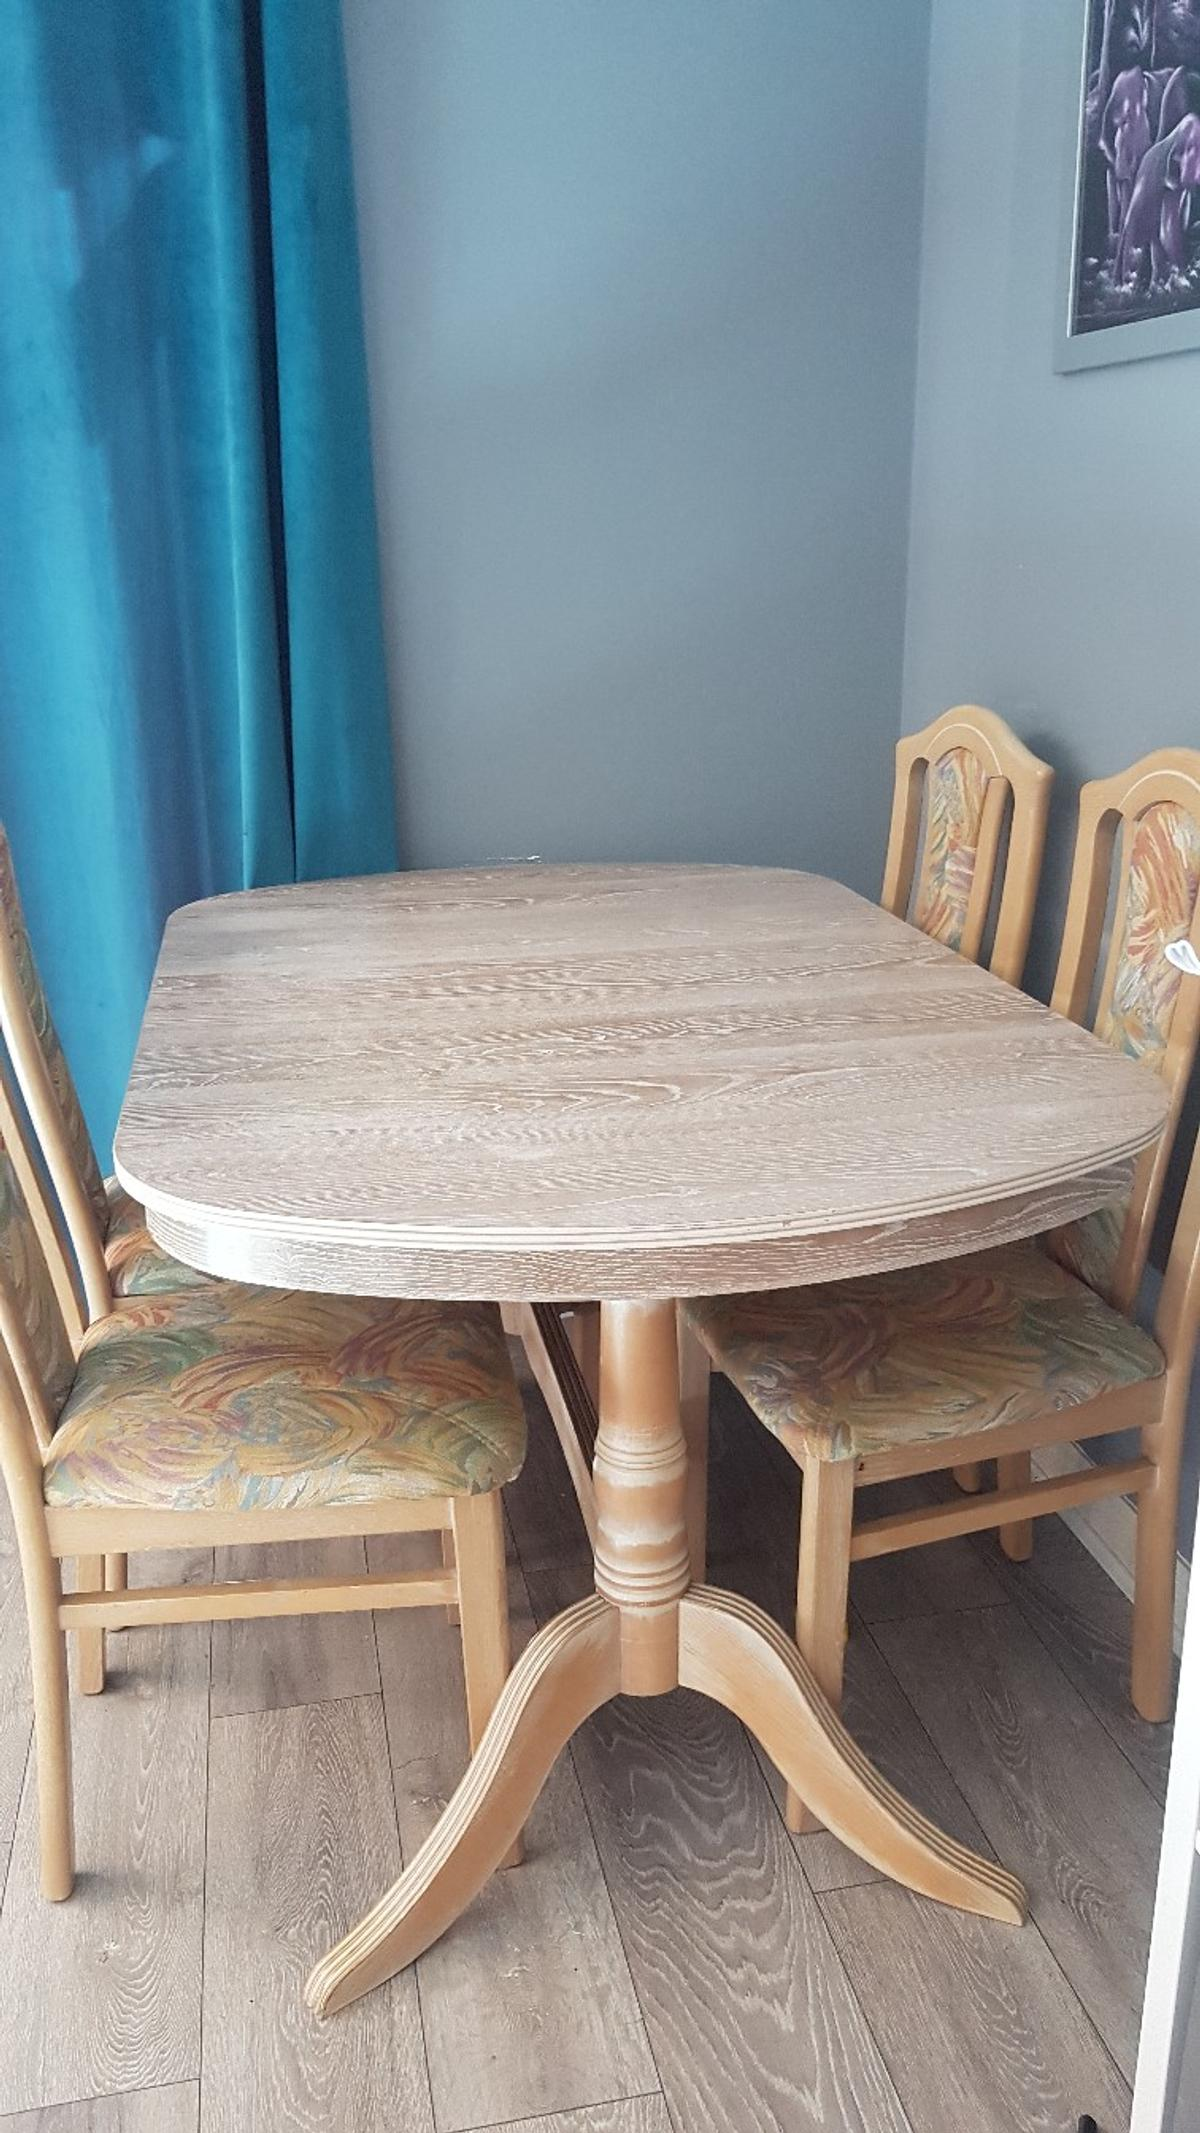 Solid rose gold table and 6 chairs. Really good condition apart from damage to 1 chair which is shown in picture. Extendable. Measures: 31 inches high 36.5 inches wide 56 inches long 70 inches long when extended  Great piece of furniture. Only selling as too big for new home.